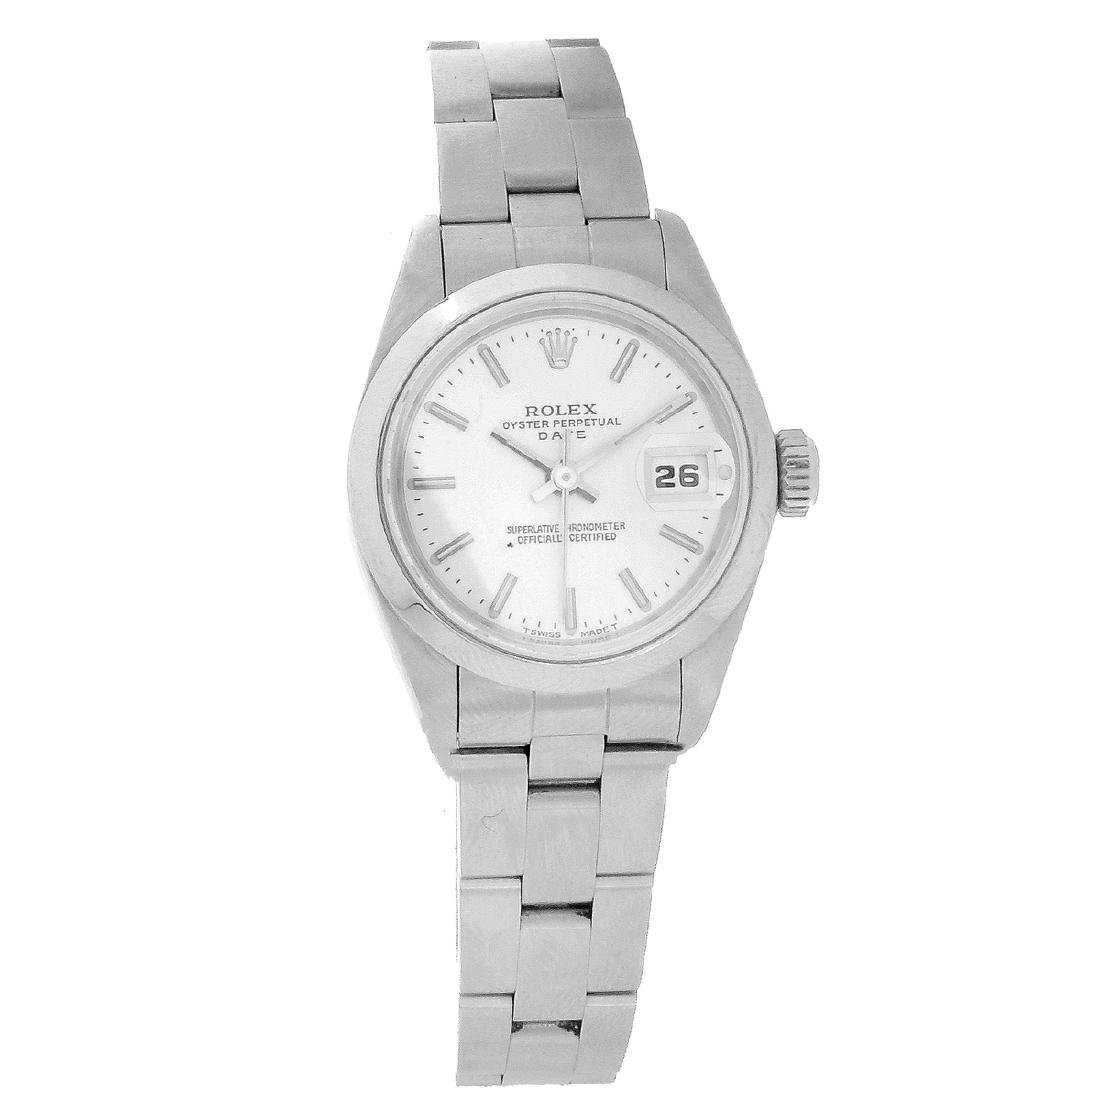 Rolex Lady's Datejust Oyster Perpetual Watch